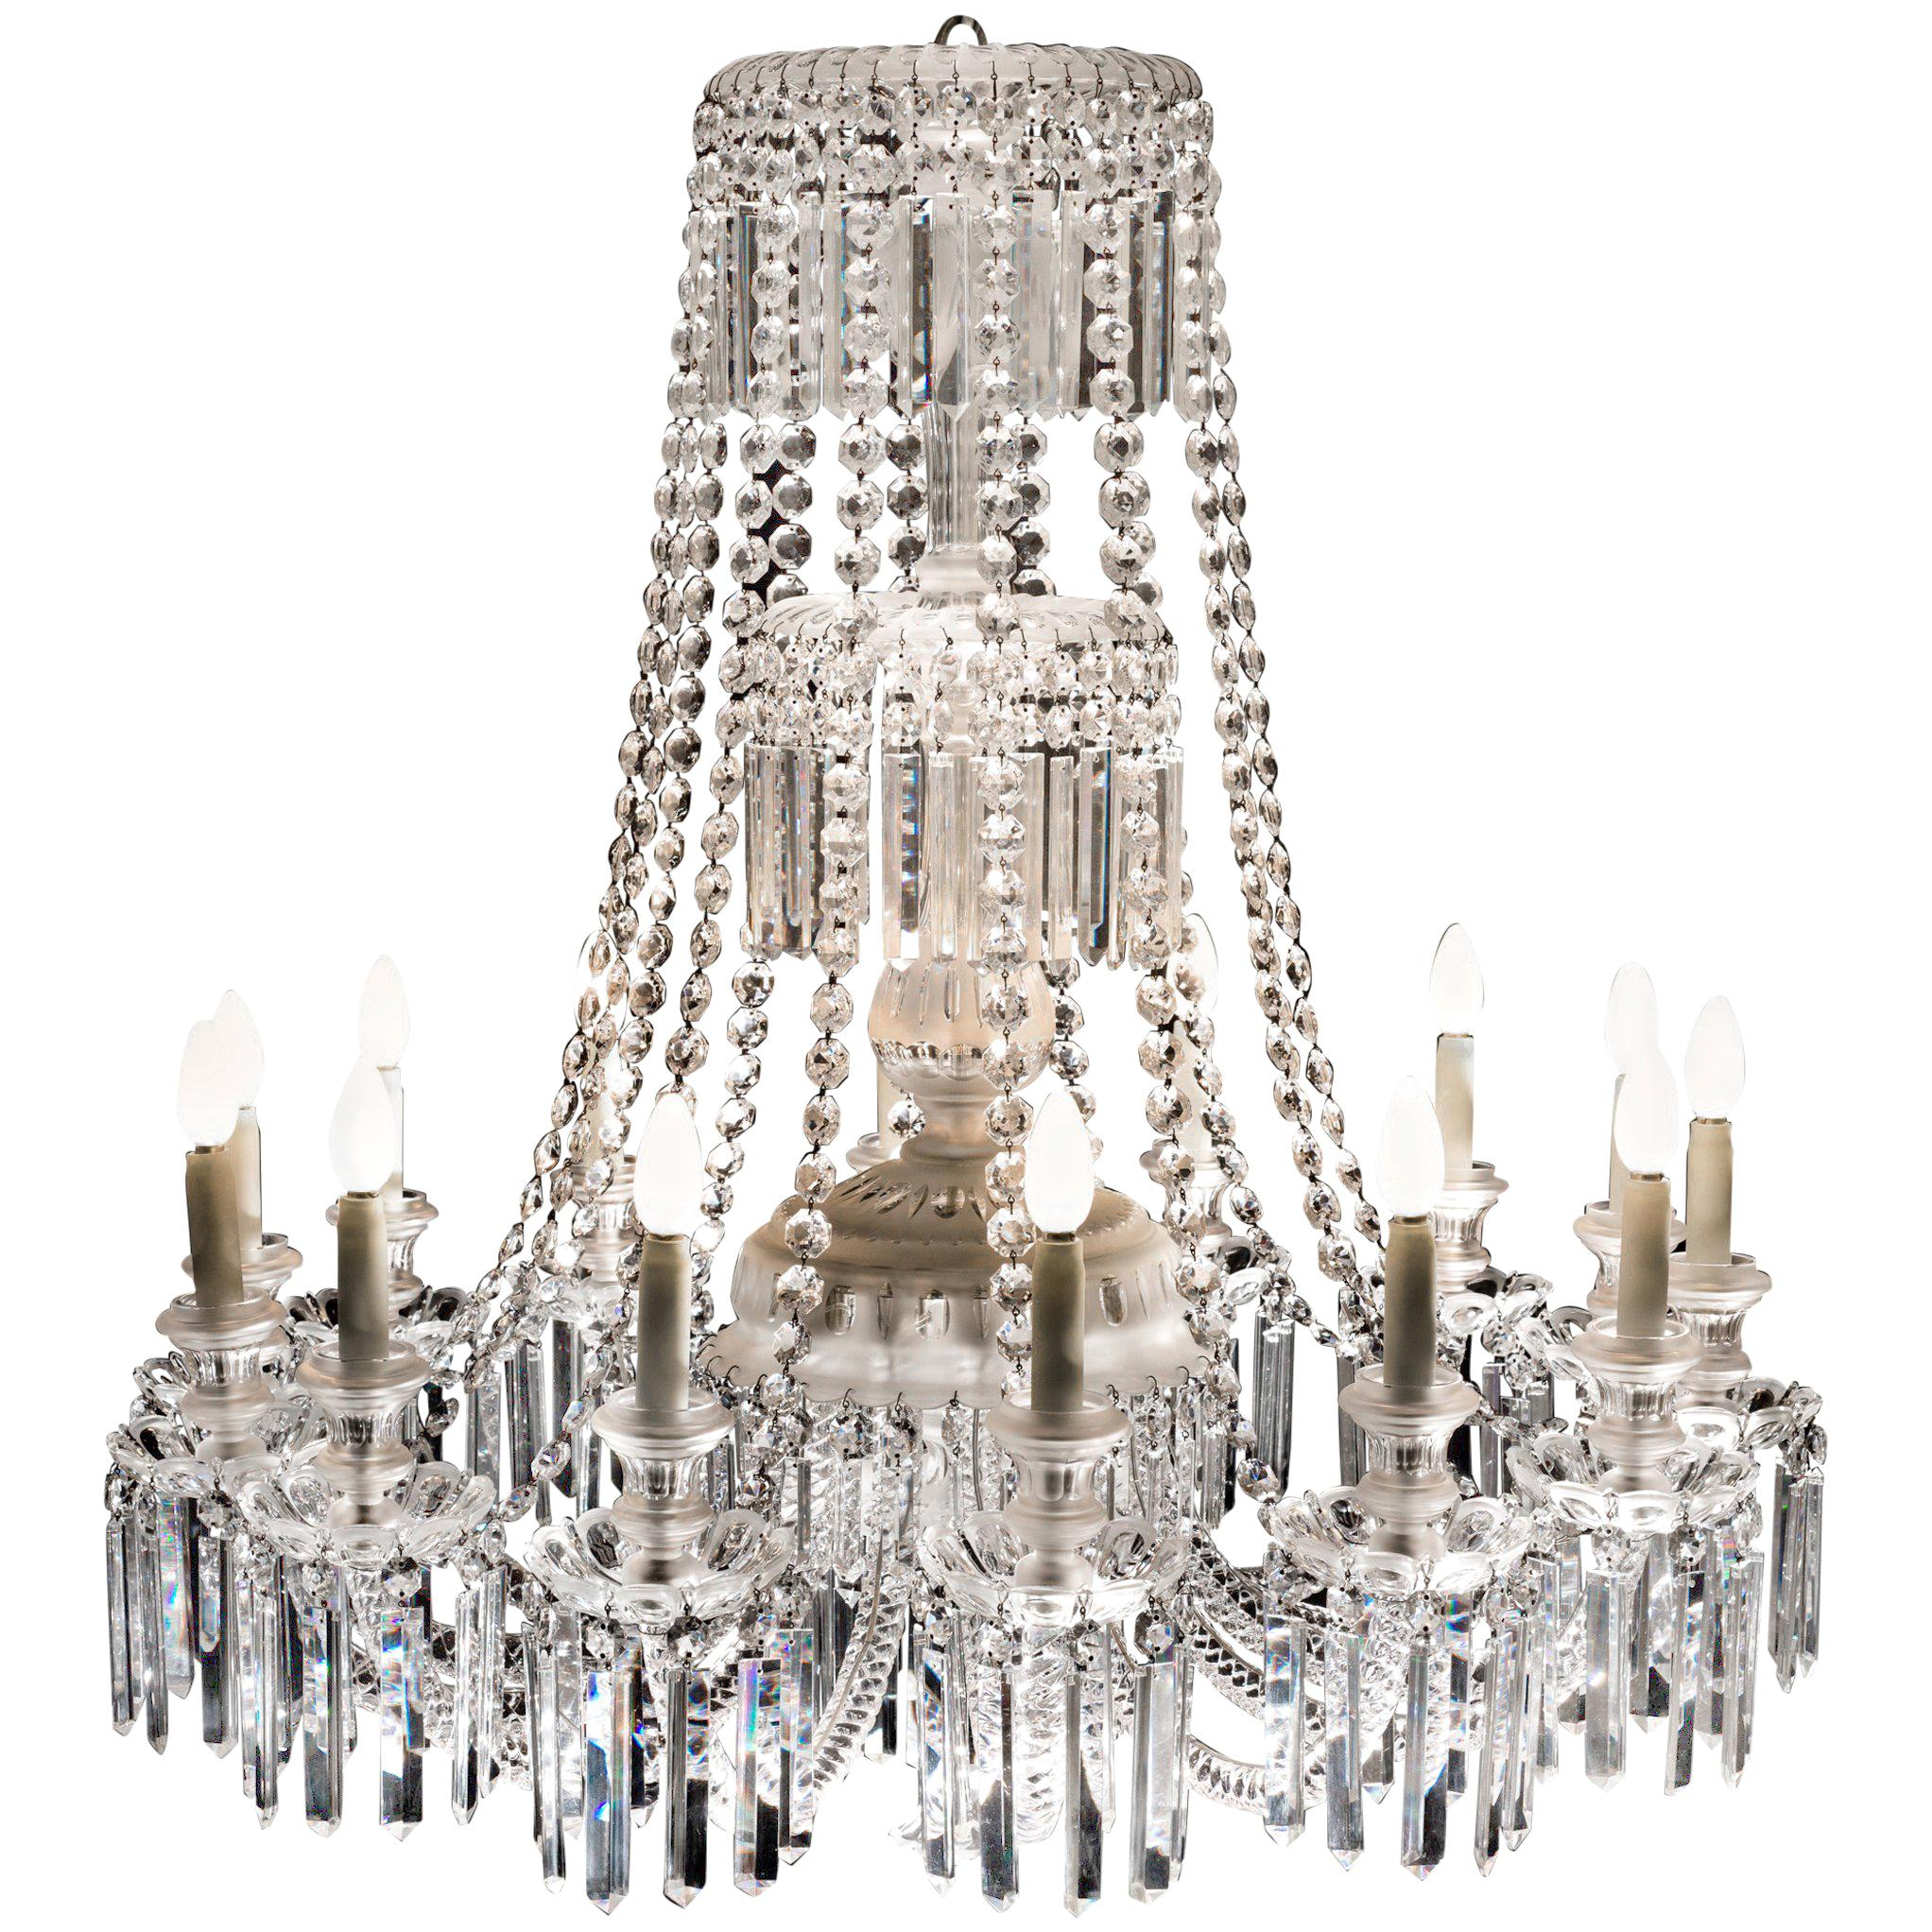 Outstanding 19th Century French Crystal Chandelier, 1870s